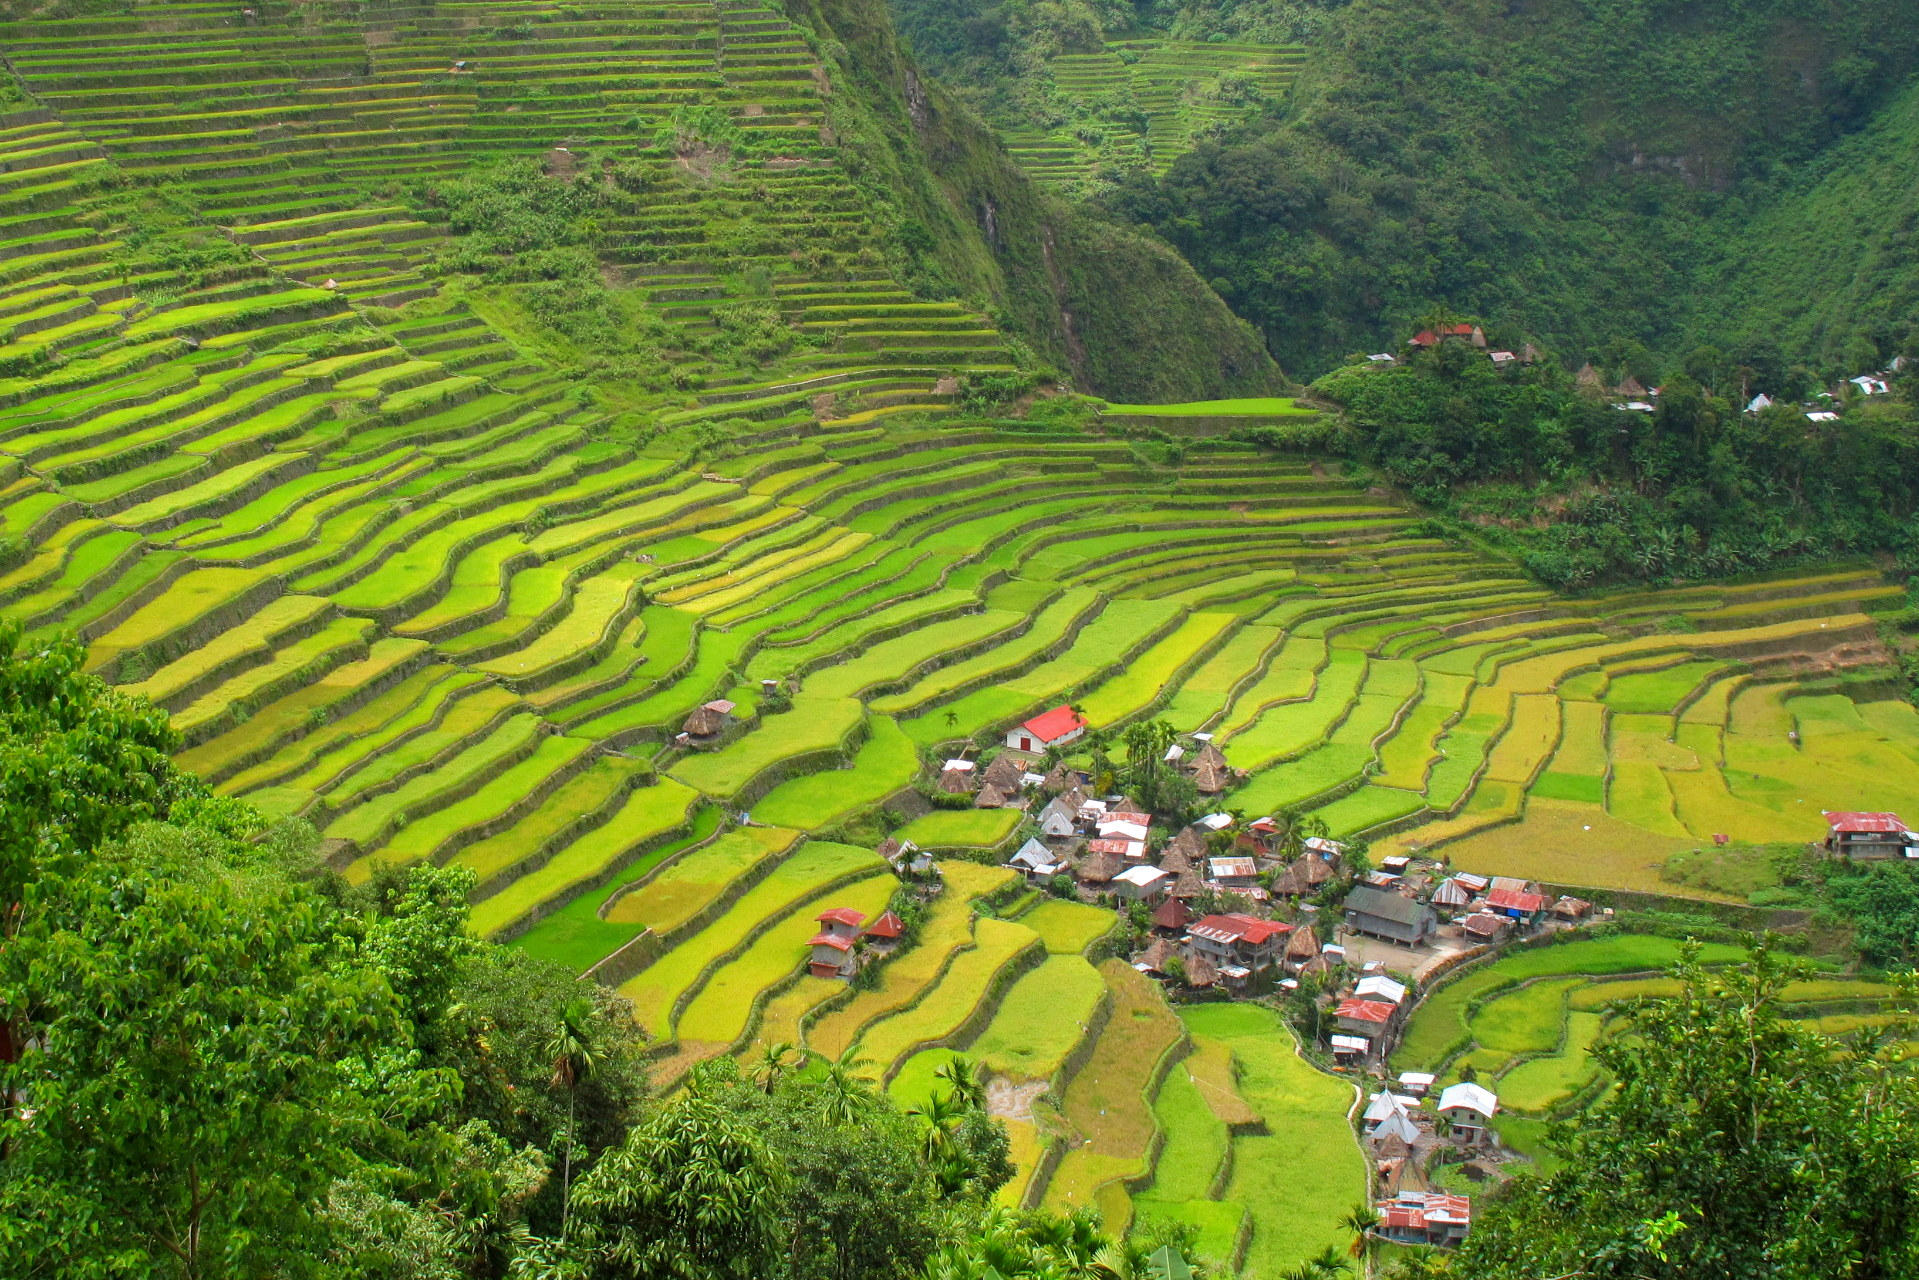 12 Photos that will make you want to visit the Banaue Rice Terraces